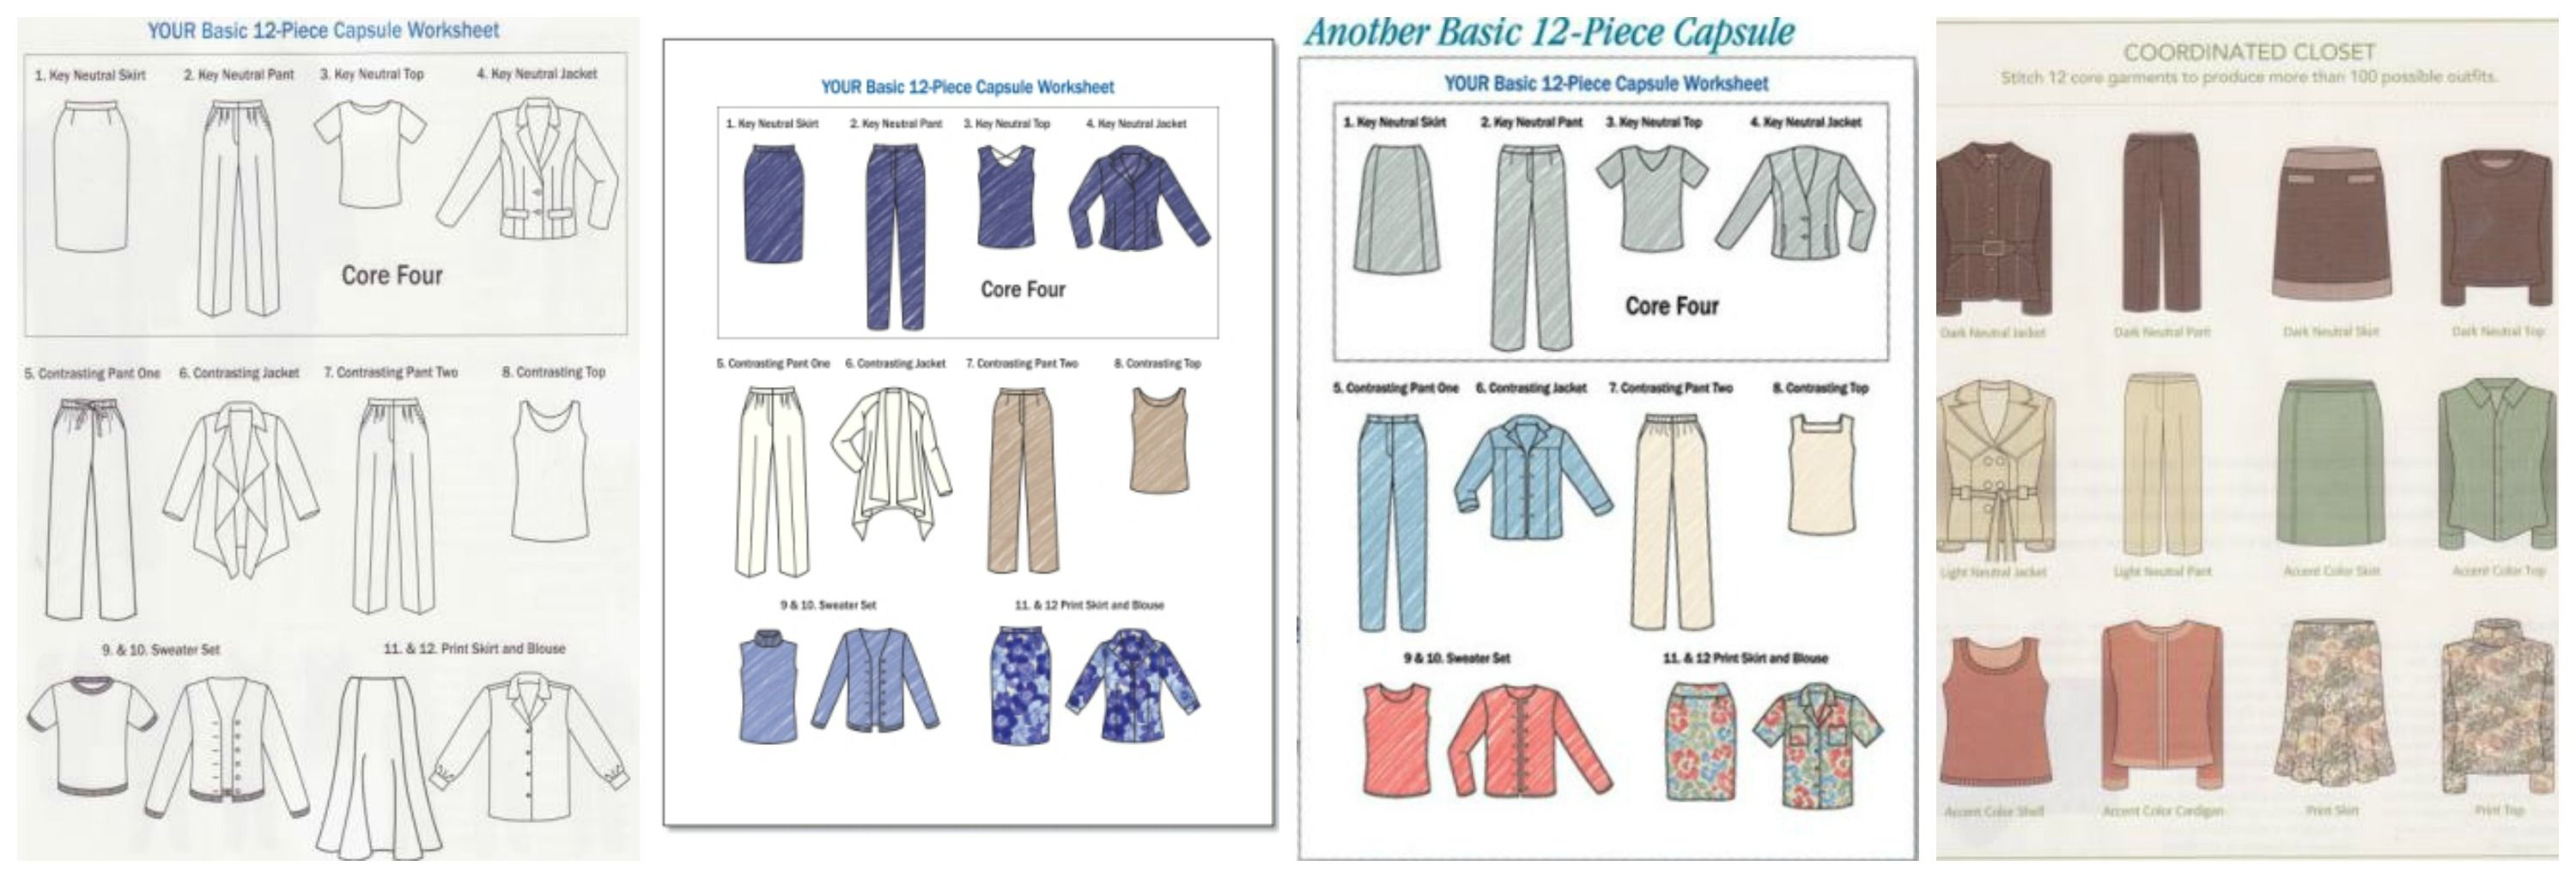 Components For Sewing Your 12 Piece Wardrobe